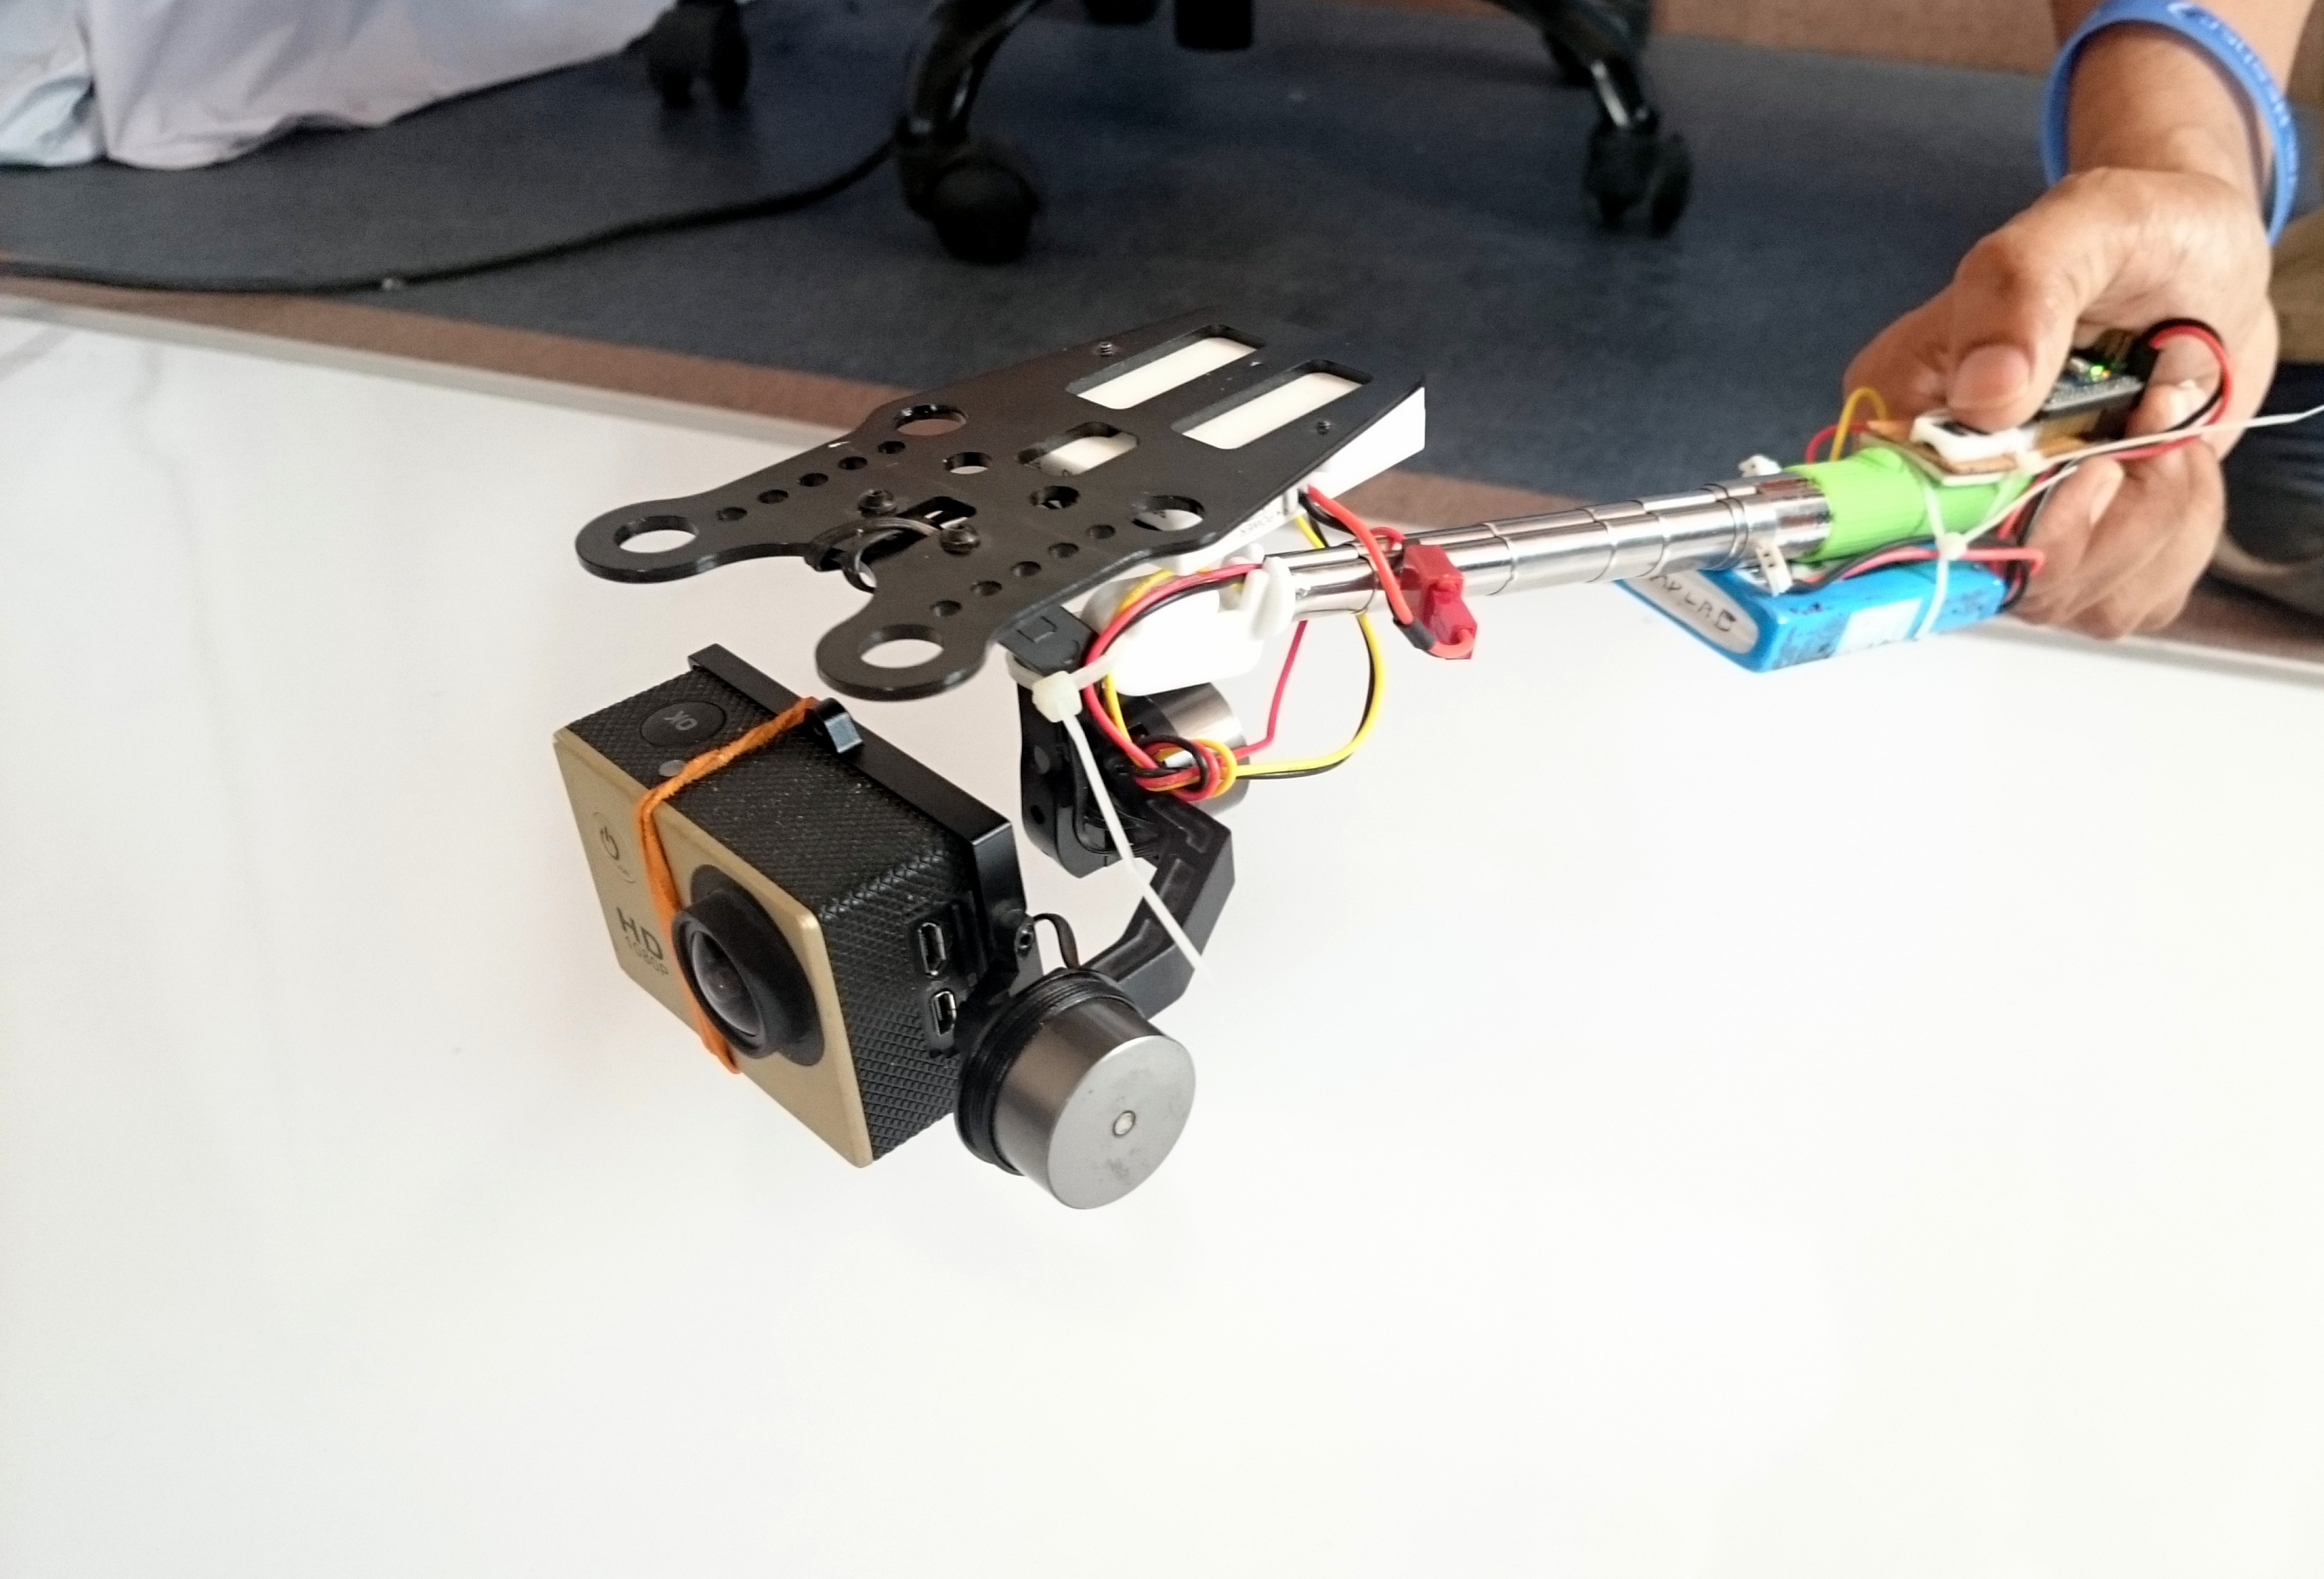 Picture of Extendable Handheld Gimbal for GoPro/SJ4000/Xiaomi Yi/iLook